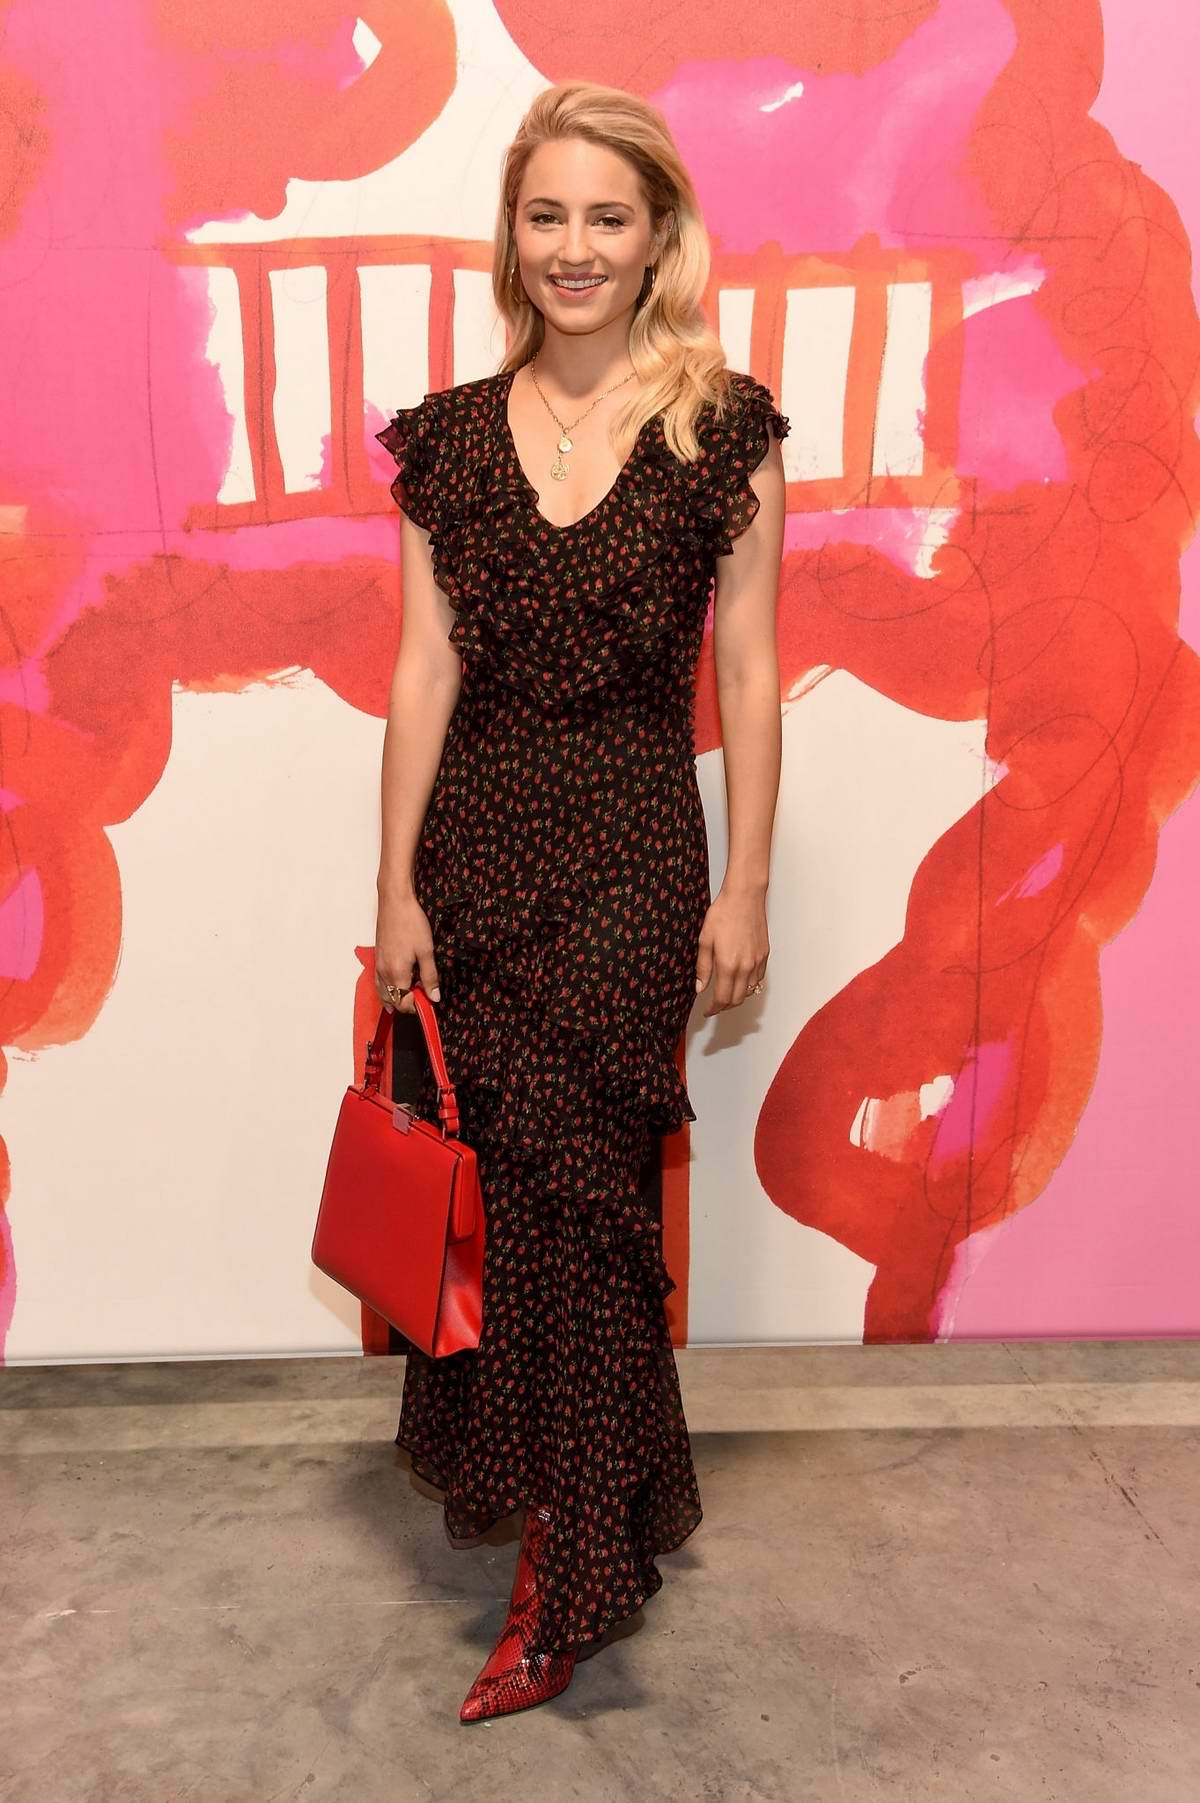 Dianna Agron attends Michael Kors Spring 2019 Collection during New York Fashion Week in New York City